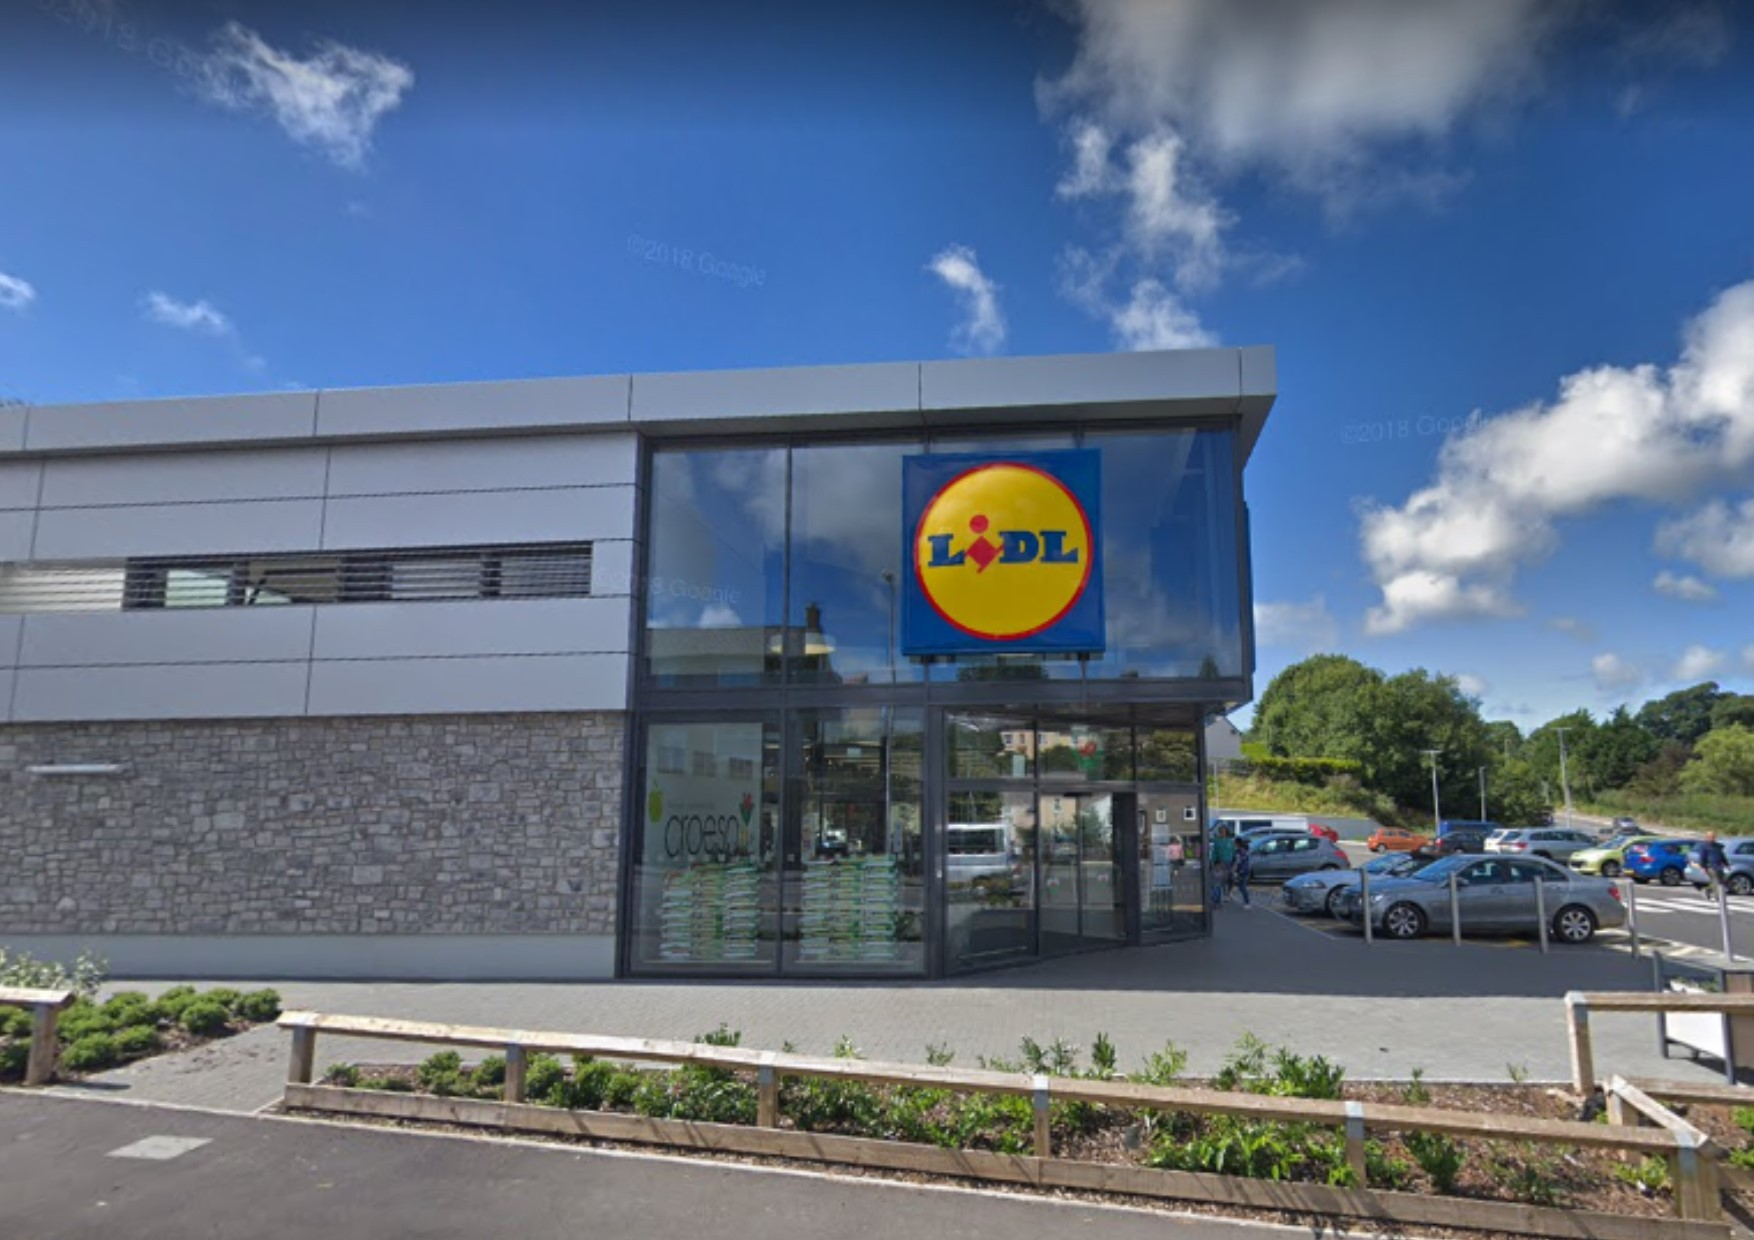 Lidl in Haverfordwest. PICTURE: Google.